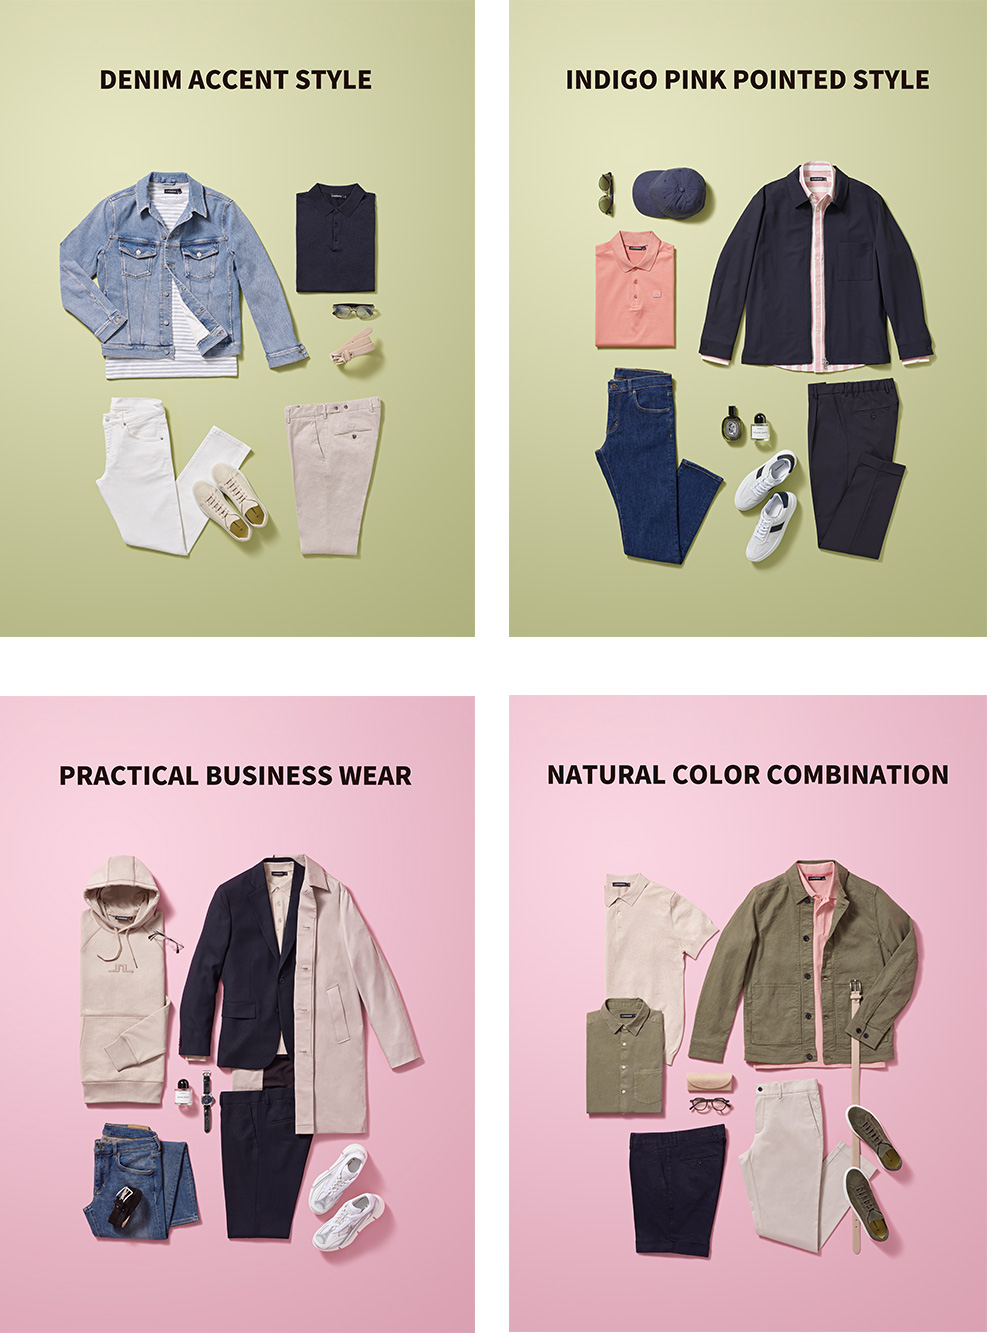 DENIM ACCENT STYLE, INDIGO PINK POINTED STYLE, PRACTICAL BUSINESS WEAR, NATURAL COLOR COMBINATION